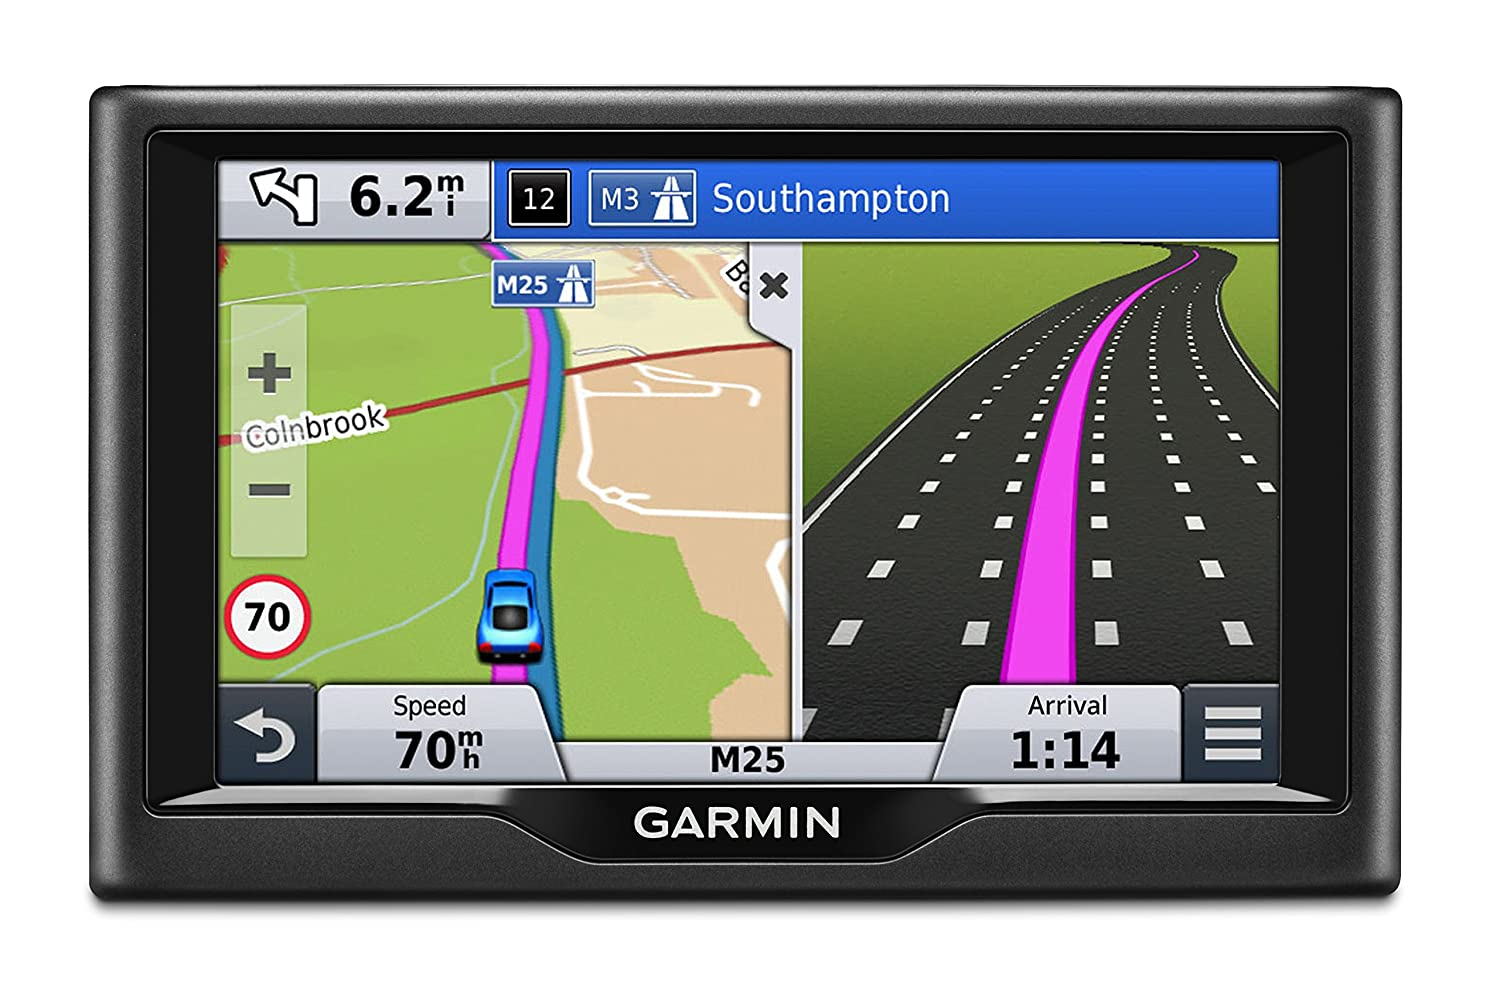 Garmin nuvi 58lmt 5 inch satellite navigation with uk ireland garmin nuvi 58lmt 5 inch satellite navigation with uk ireland full europe free lifetime maps and traffic black amazon electronics gumiabroncs Choice Image